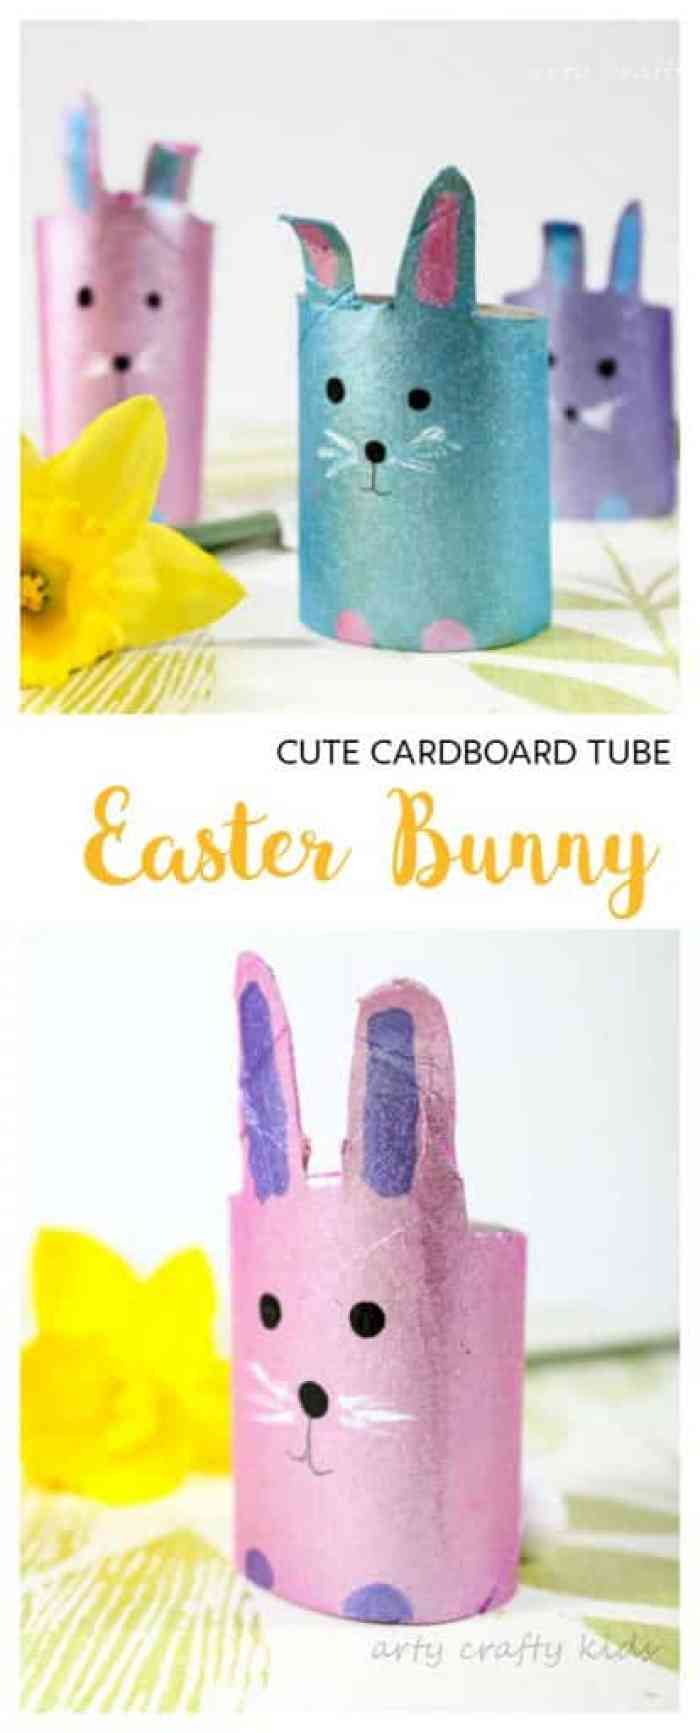 Easy easter bunny crafts - Arty Crafty Kids Craft Easter Easy Cardboard Tube Easter Bunny Craft